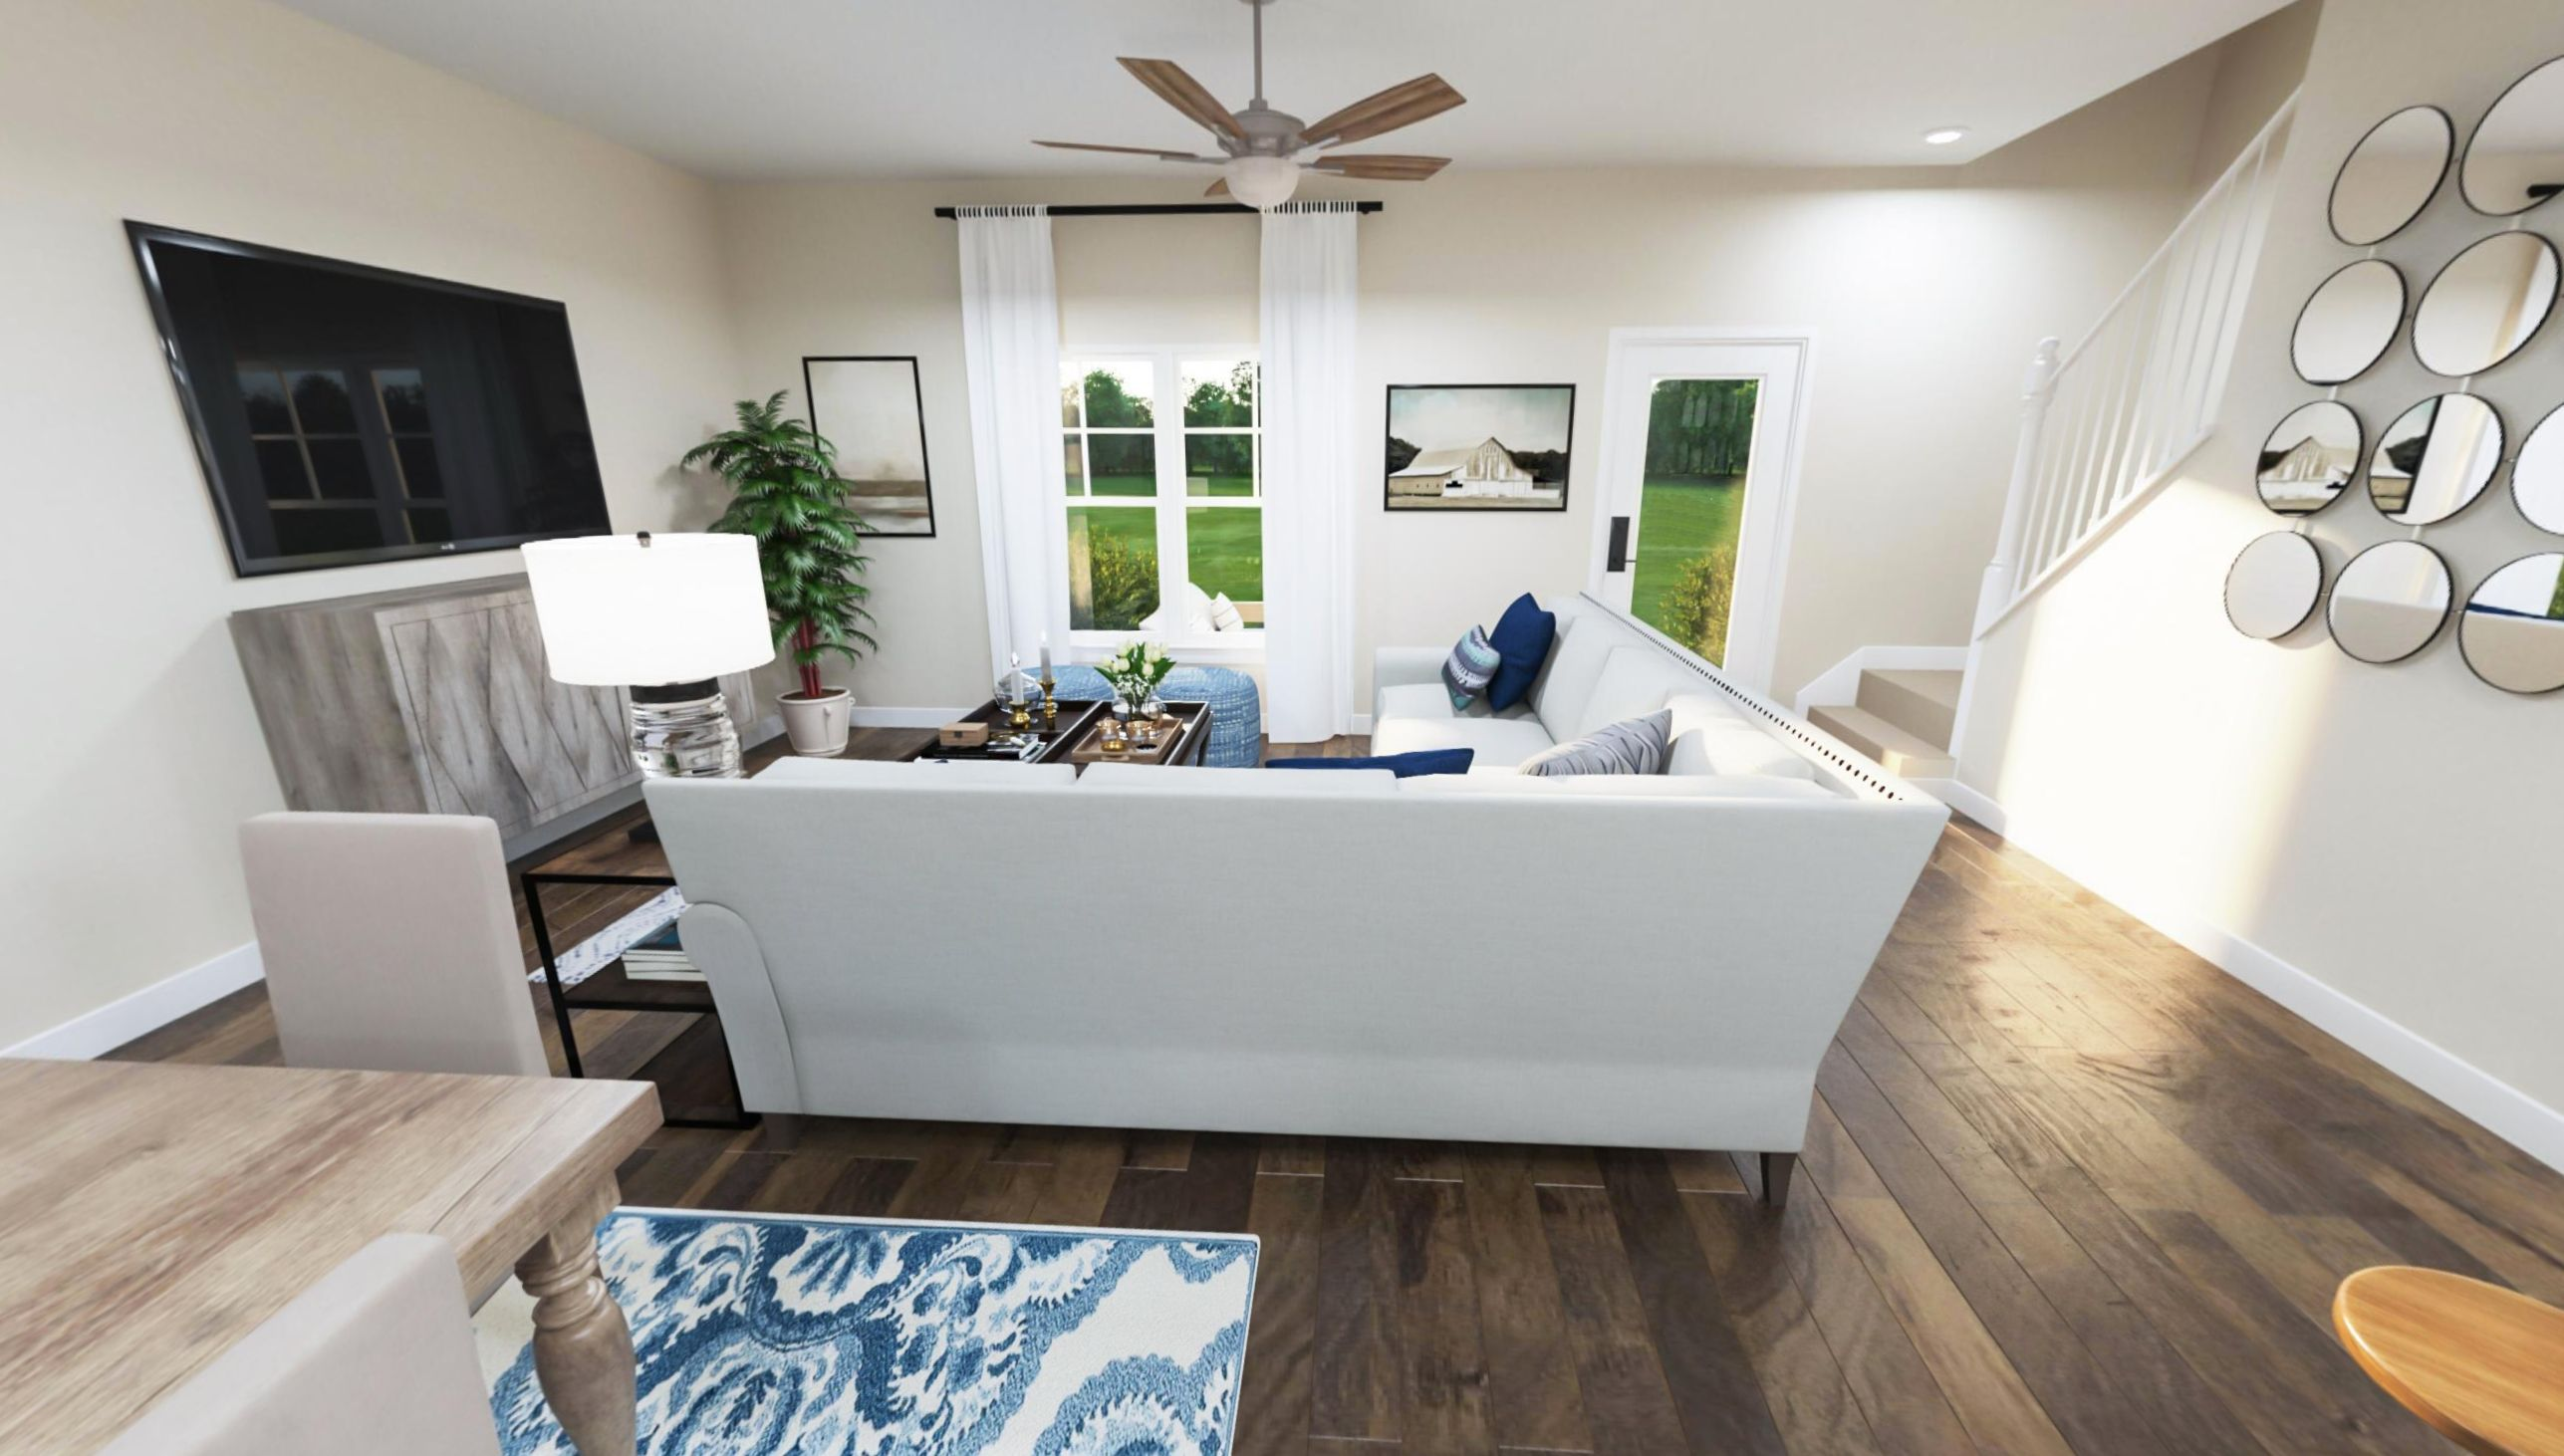 'Towns at Swift Creek by Boyd Homes' by Boyd Homes in Richmond-Petersburg